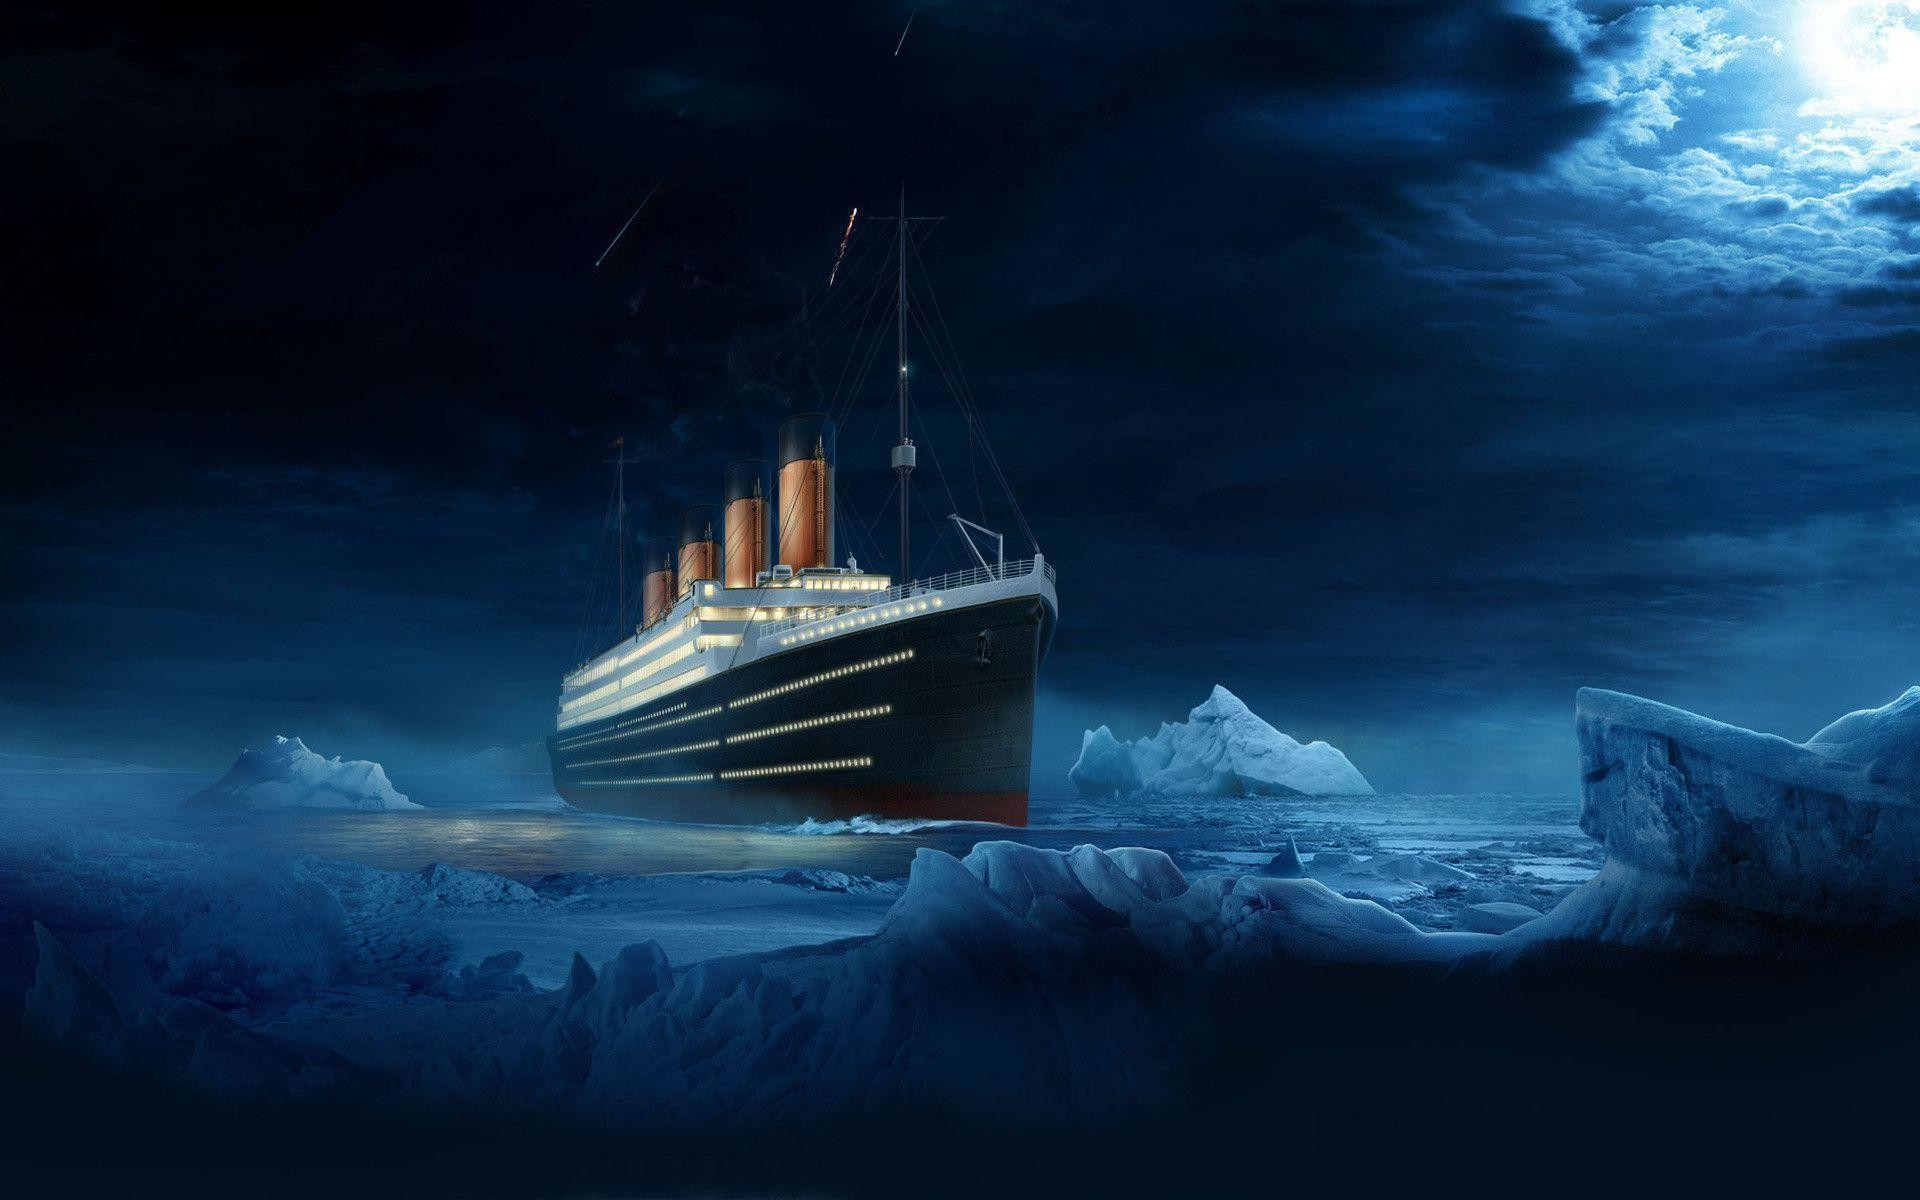 1920x1200 Ship titanic ship titanic water night wallpaper |  .